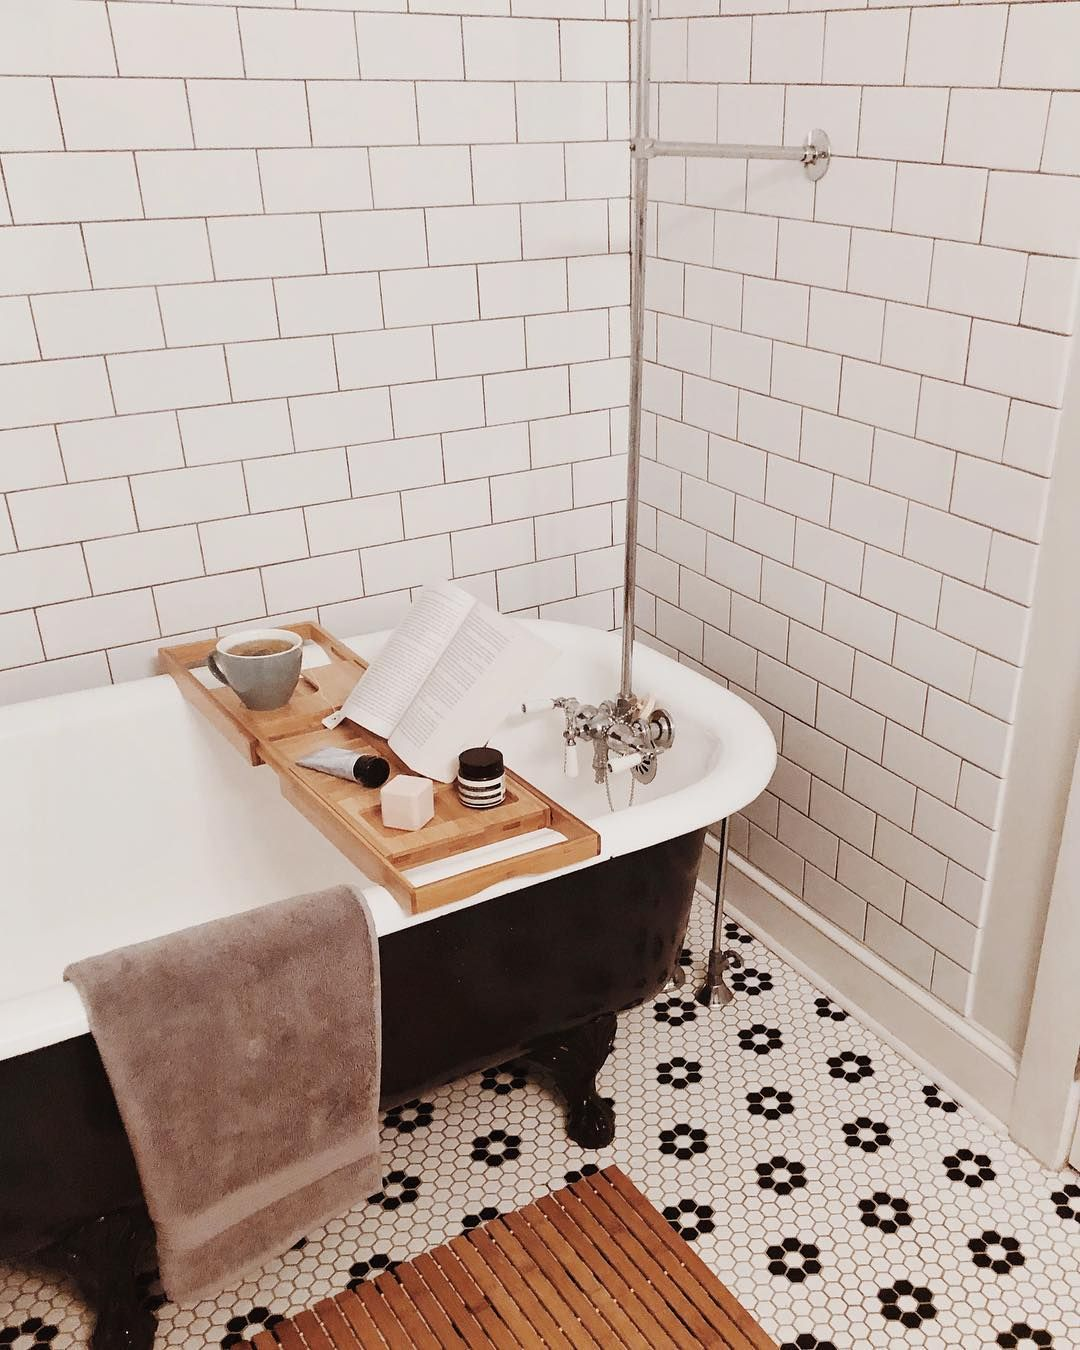 Next Level Bath Set Up Brought To You By @roxwithlox And Our Favorite  Classic Bath Towel. #MyParachuteHome